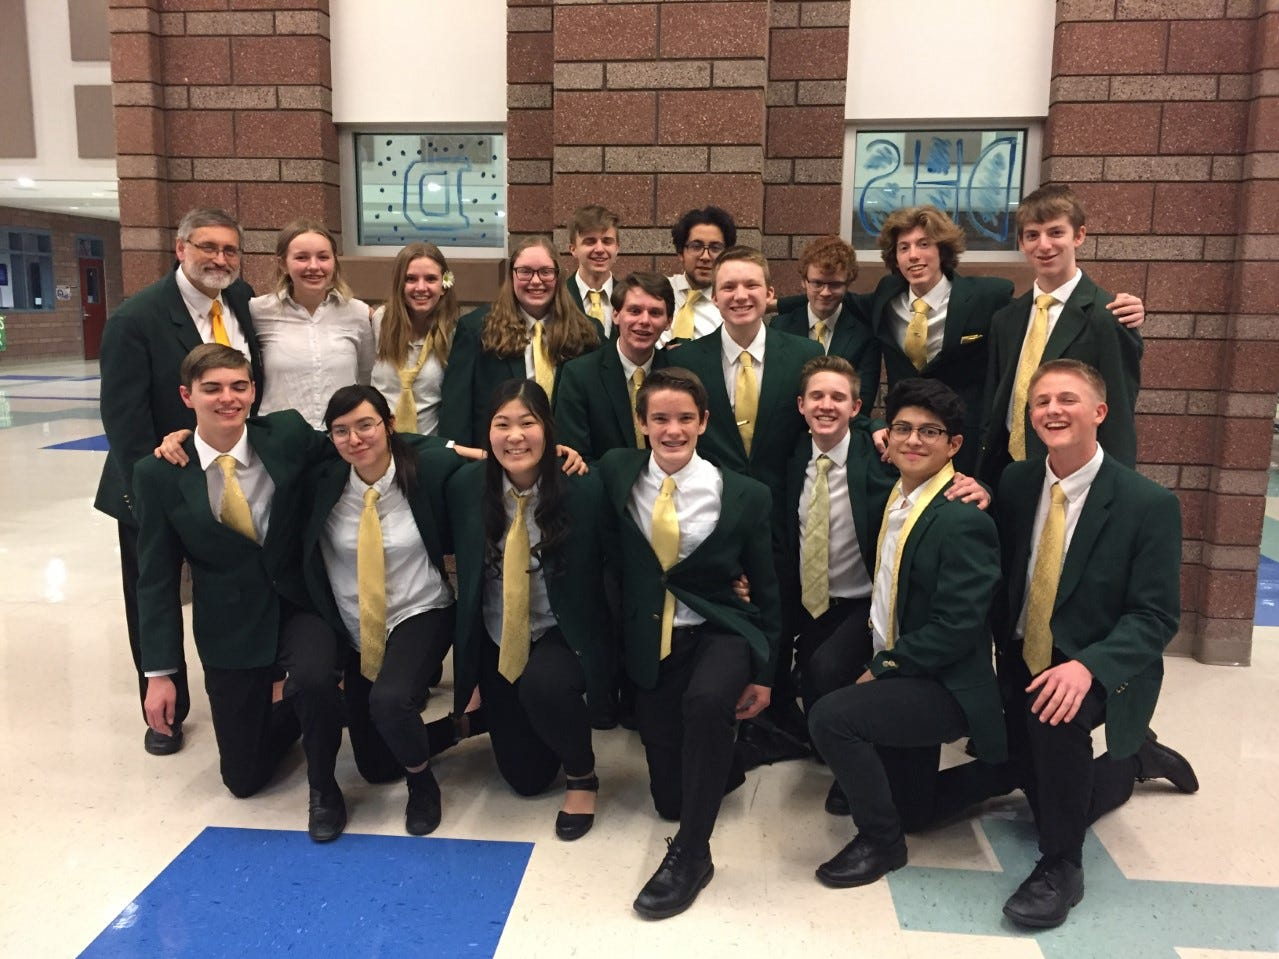 Members of the Snow Canyon High Jazz Band pose at the region competition on Feb. 27, 2019. The team is scheduled to participate in the state competition March 22-23.